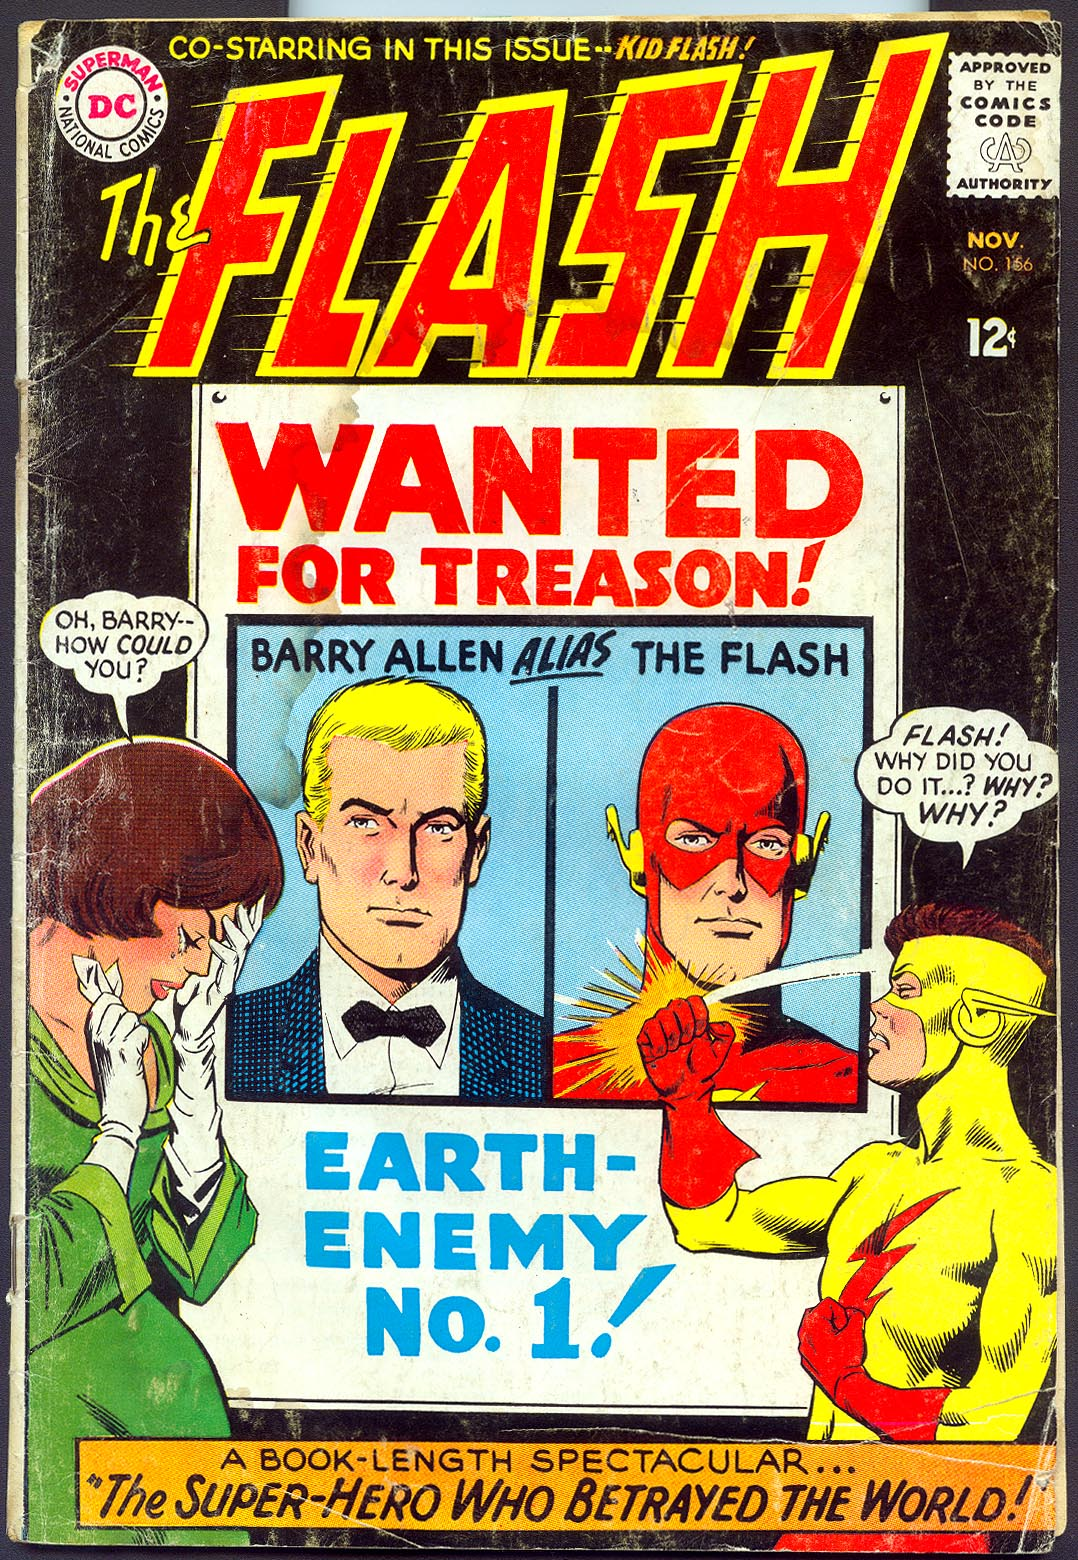 Flash vol 1 - 156 -G